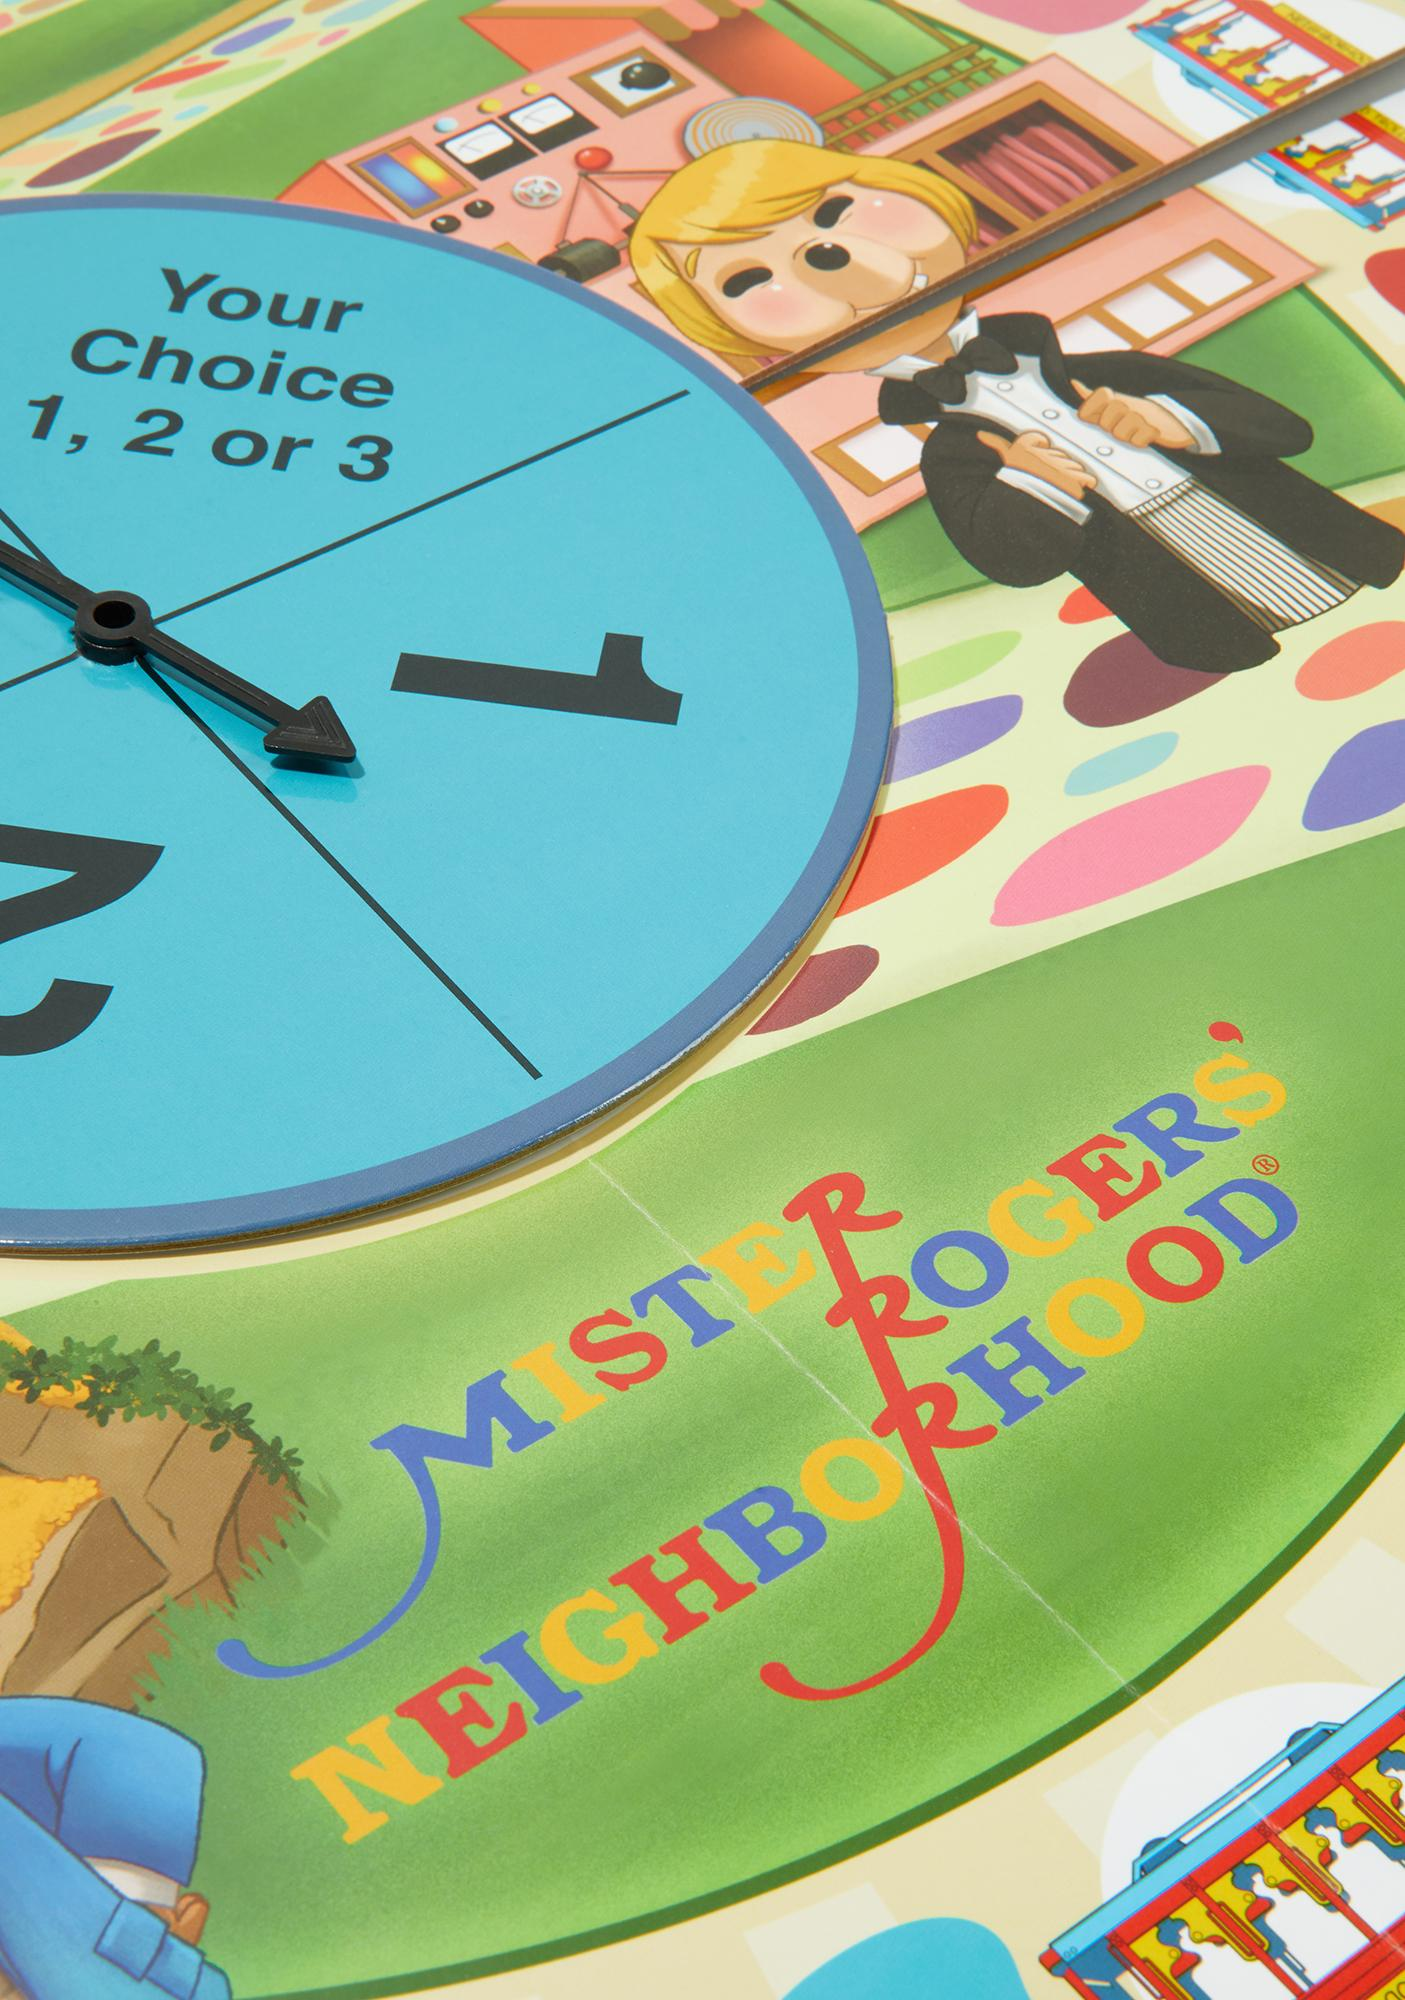 Mister Rogers' Board Game